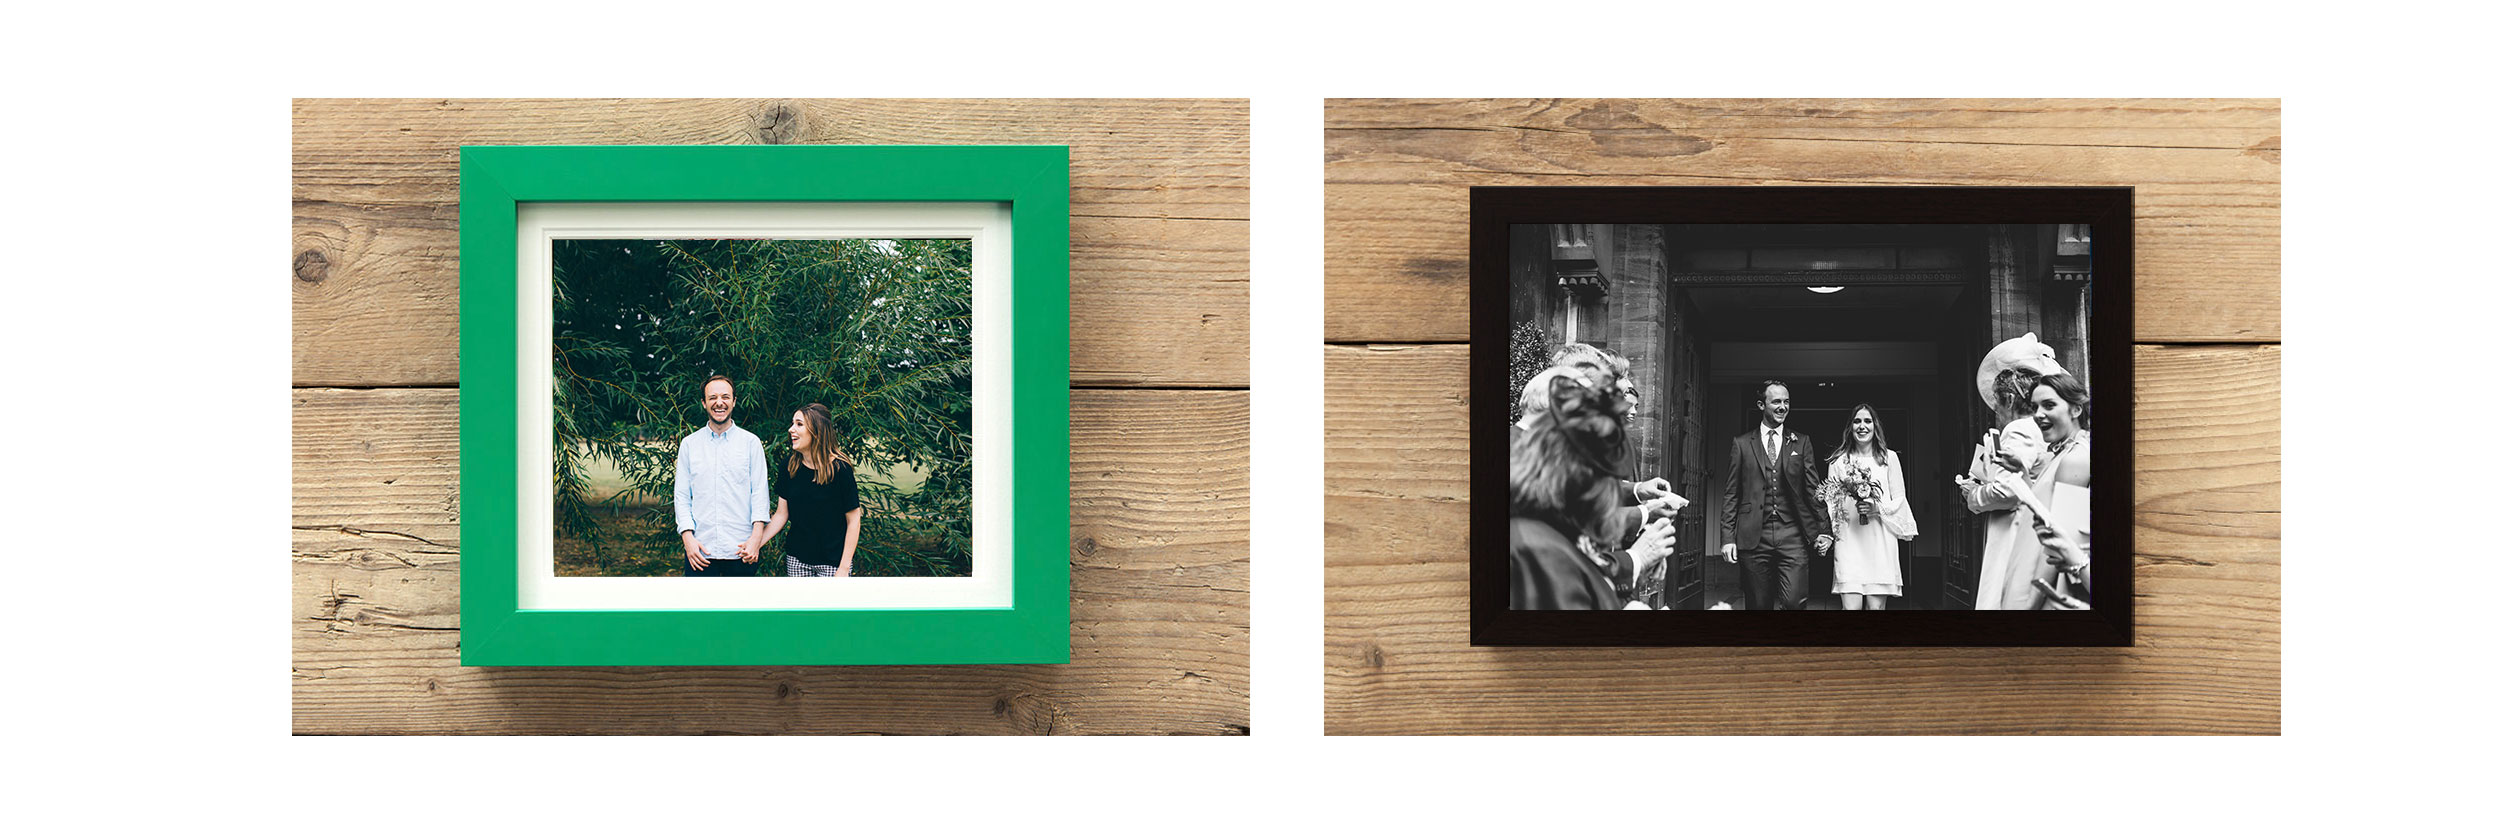 To order framed prints simple pick    IMAGE REF (From online gallery) + SIZE + LAYOUT + FRAME STYLE + MOUNT COLOUR/NO MOUNT)   Alternatively take advantage of a free design service and simply tell me    IMAGE REF (From your online gallery) + SIZE + LAYOUT  And I'll send you some design options.